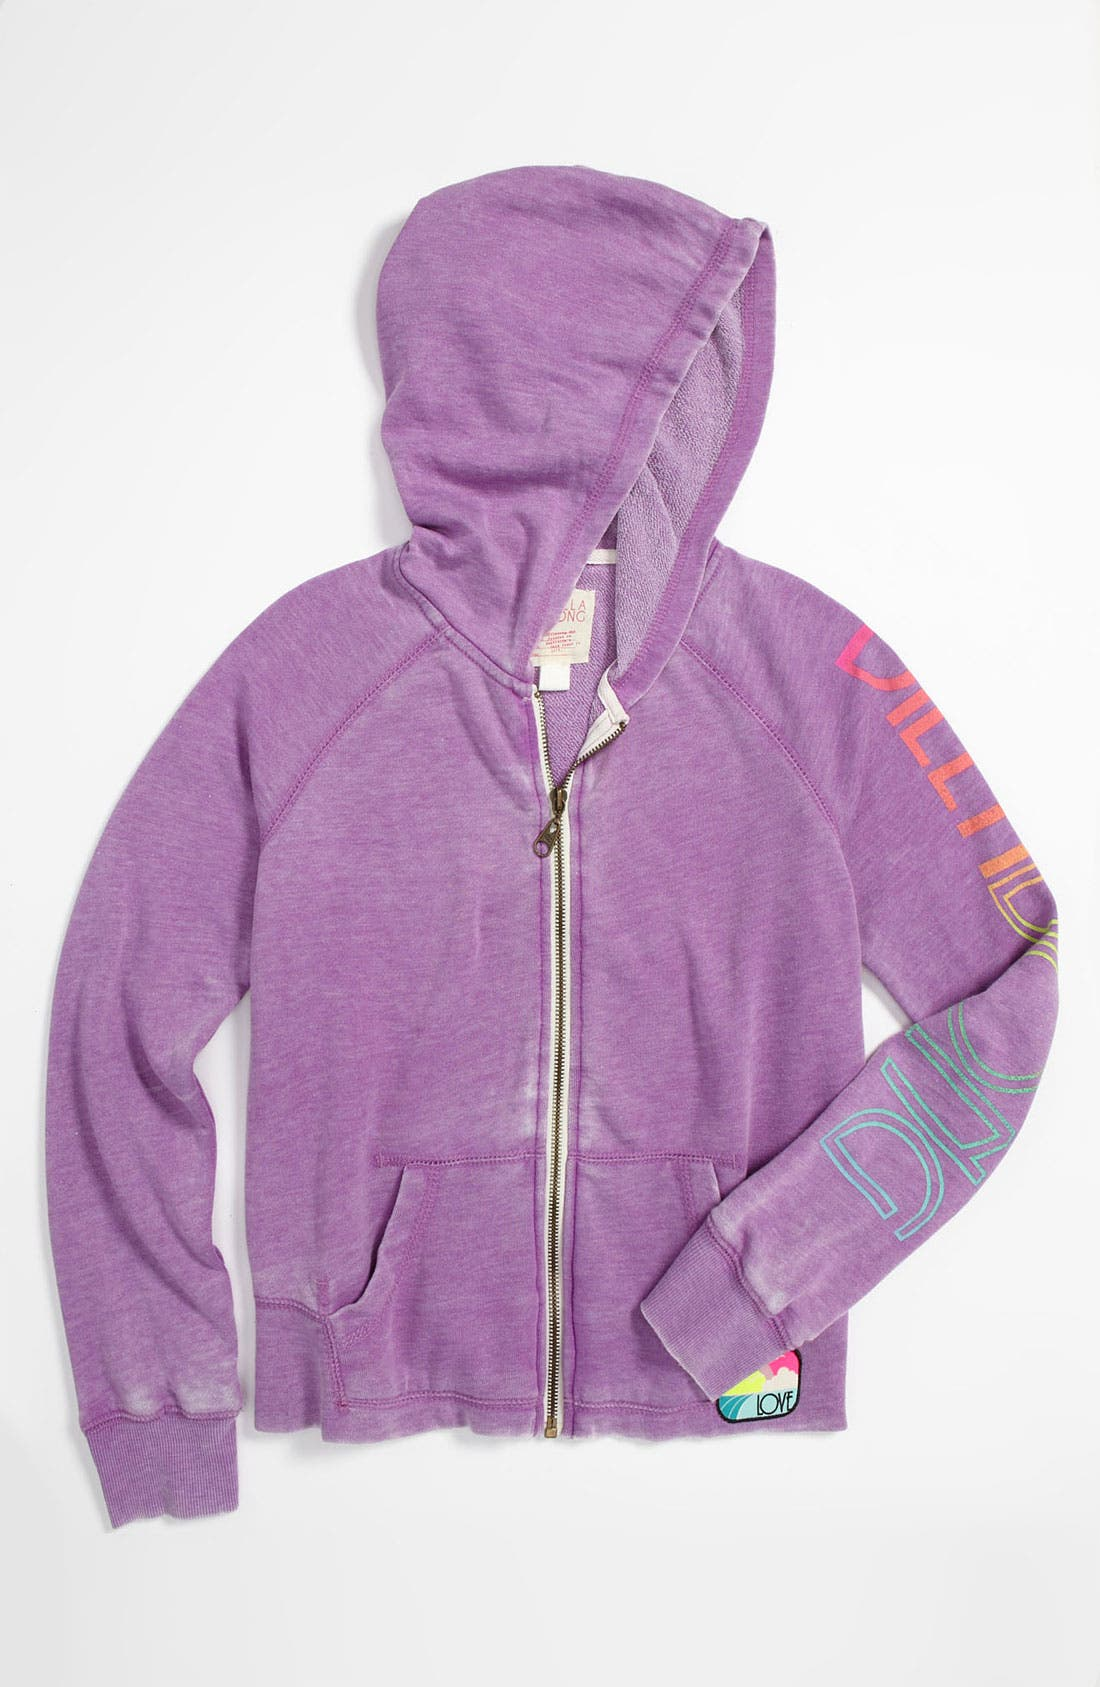 Alternate Image 1 Selected - Billabong 'Stole My Heart' Hoodie (Big Girls)